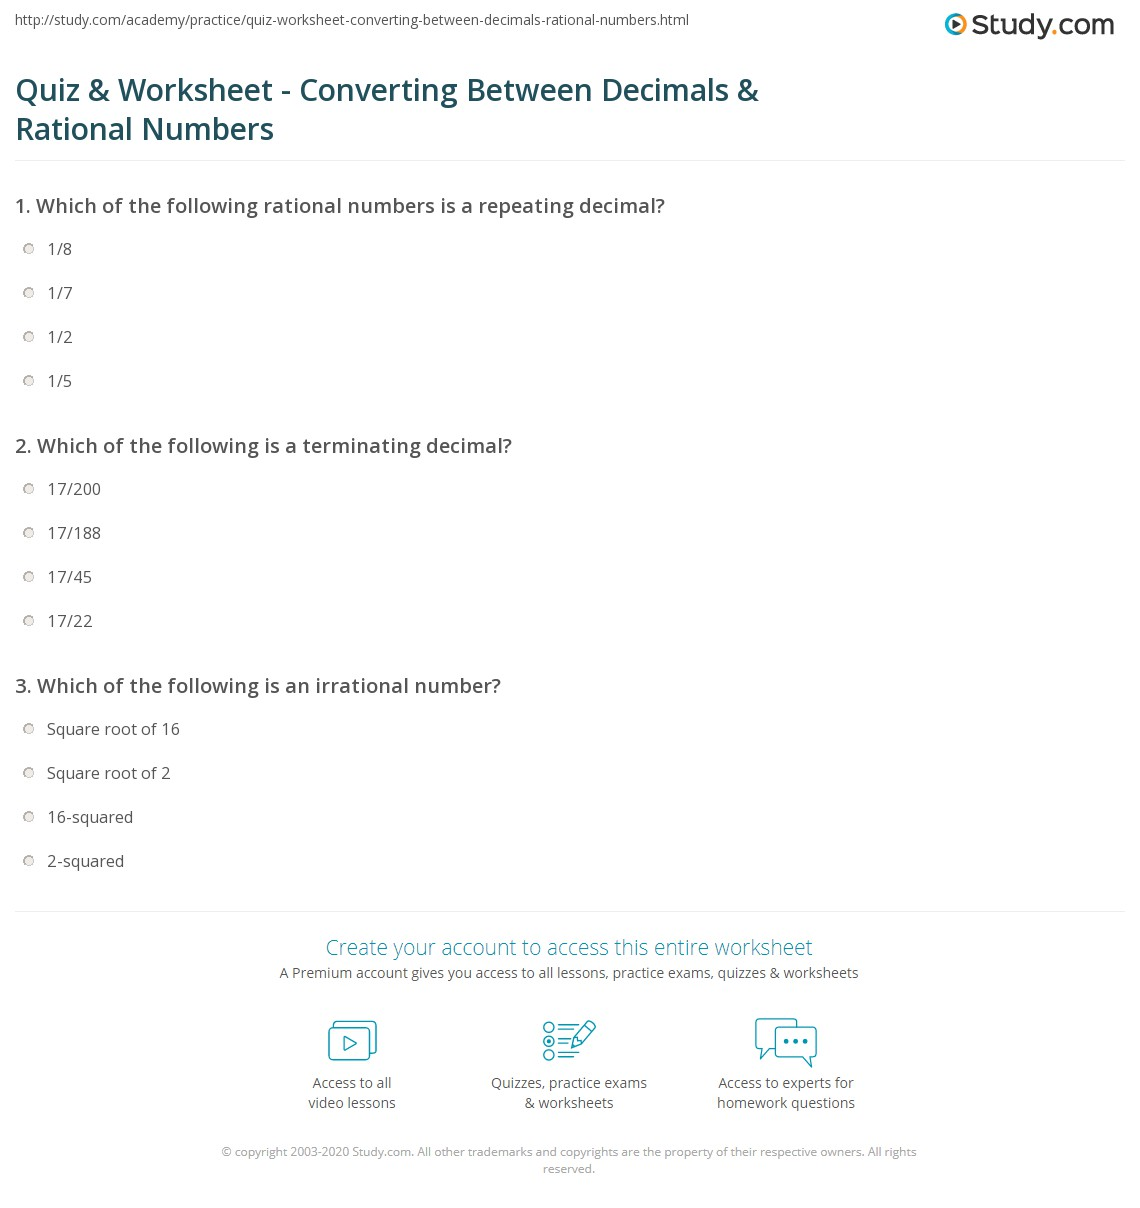 Worksheets Rational And Irrational Worksheets quiz worksheet converting between decimals rational numbers print decimal expansion of worksheet